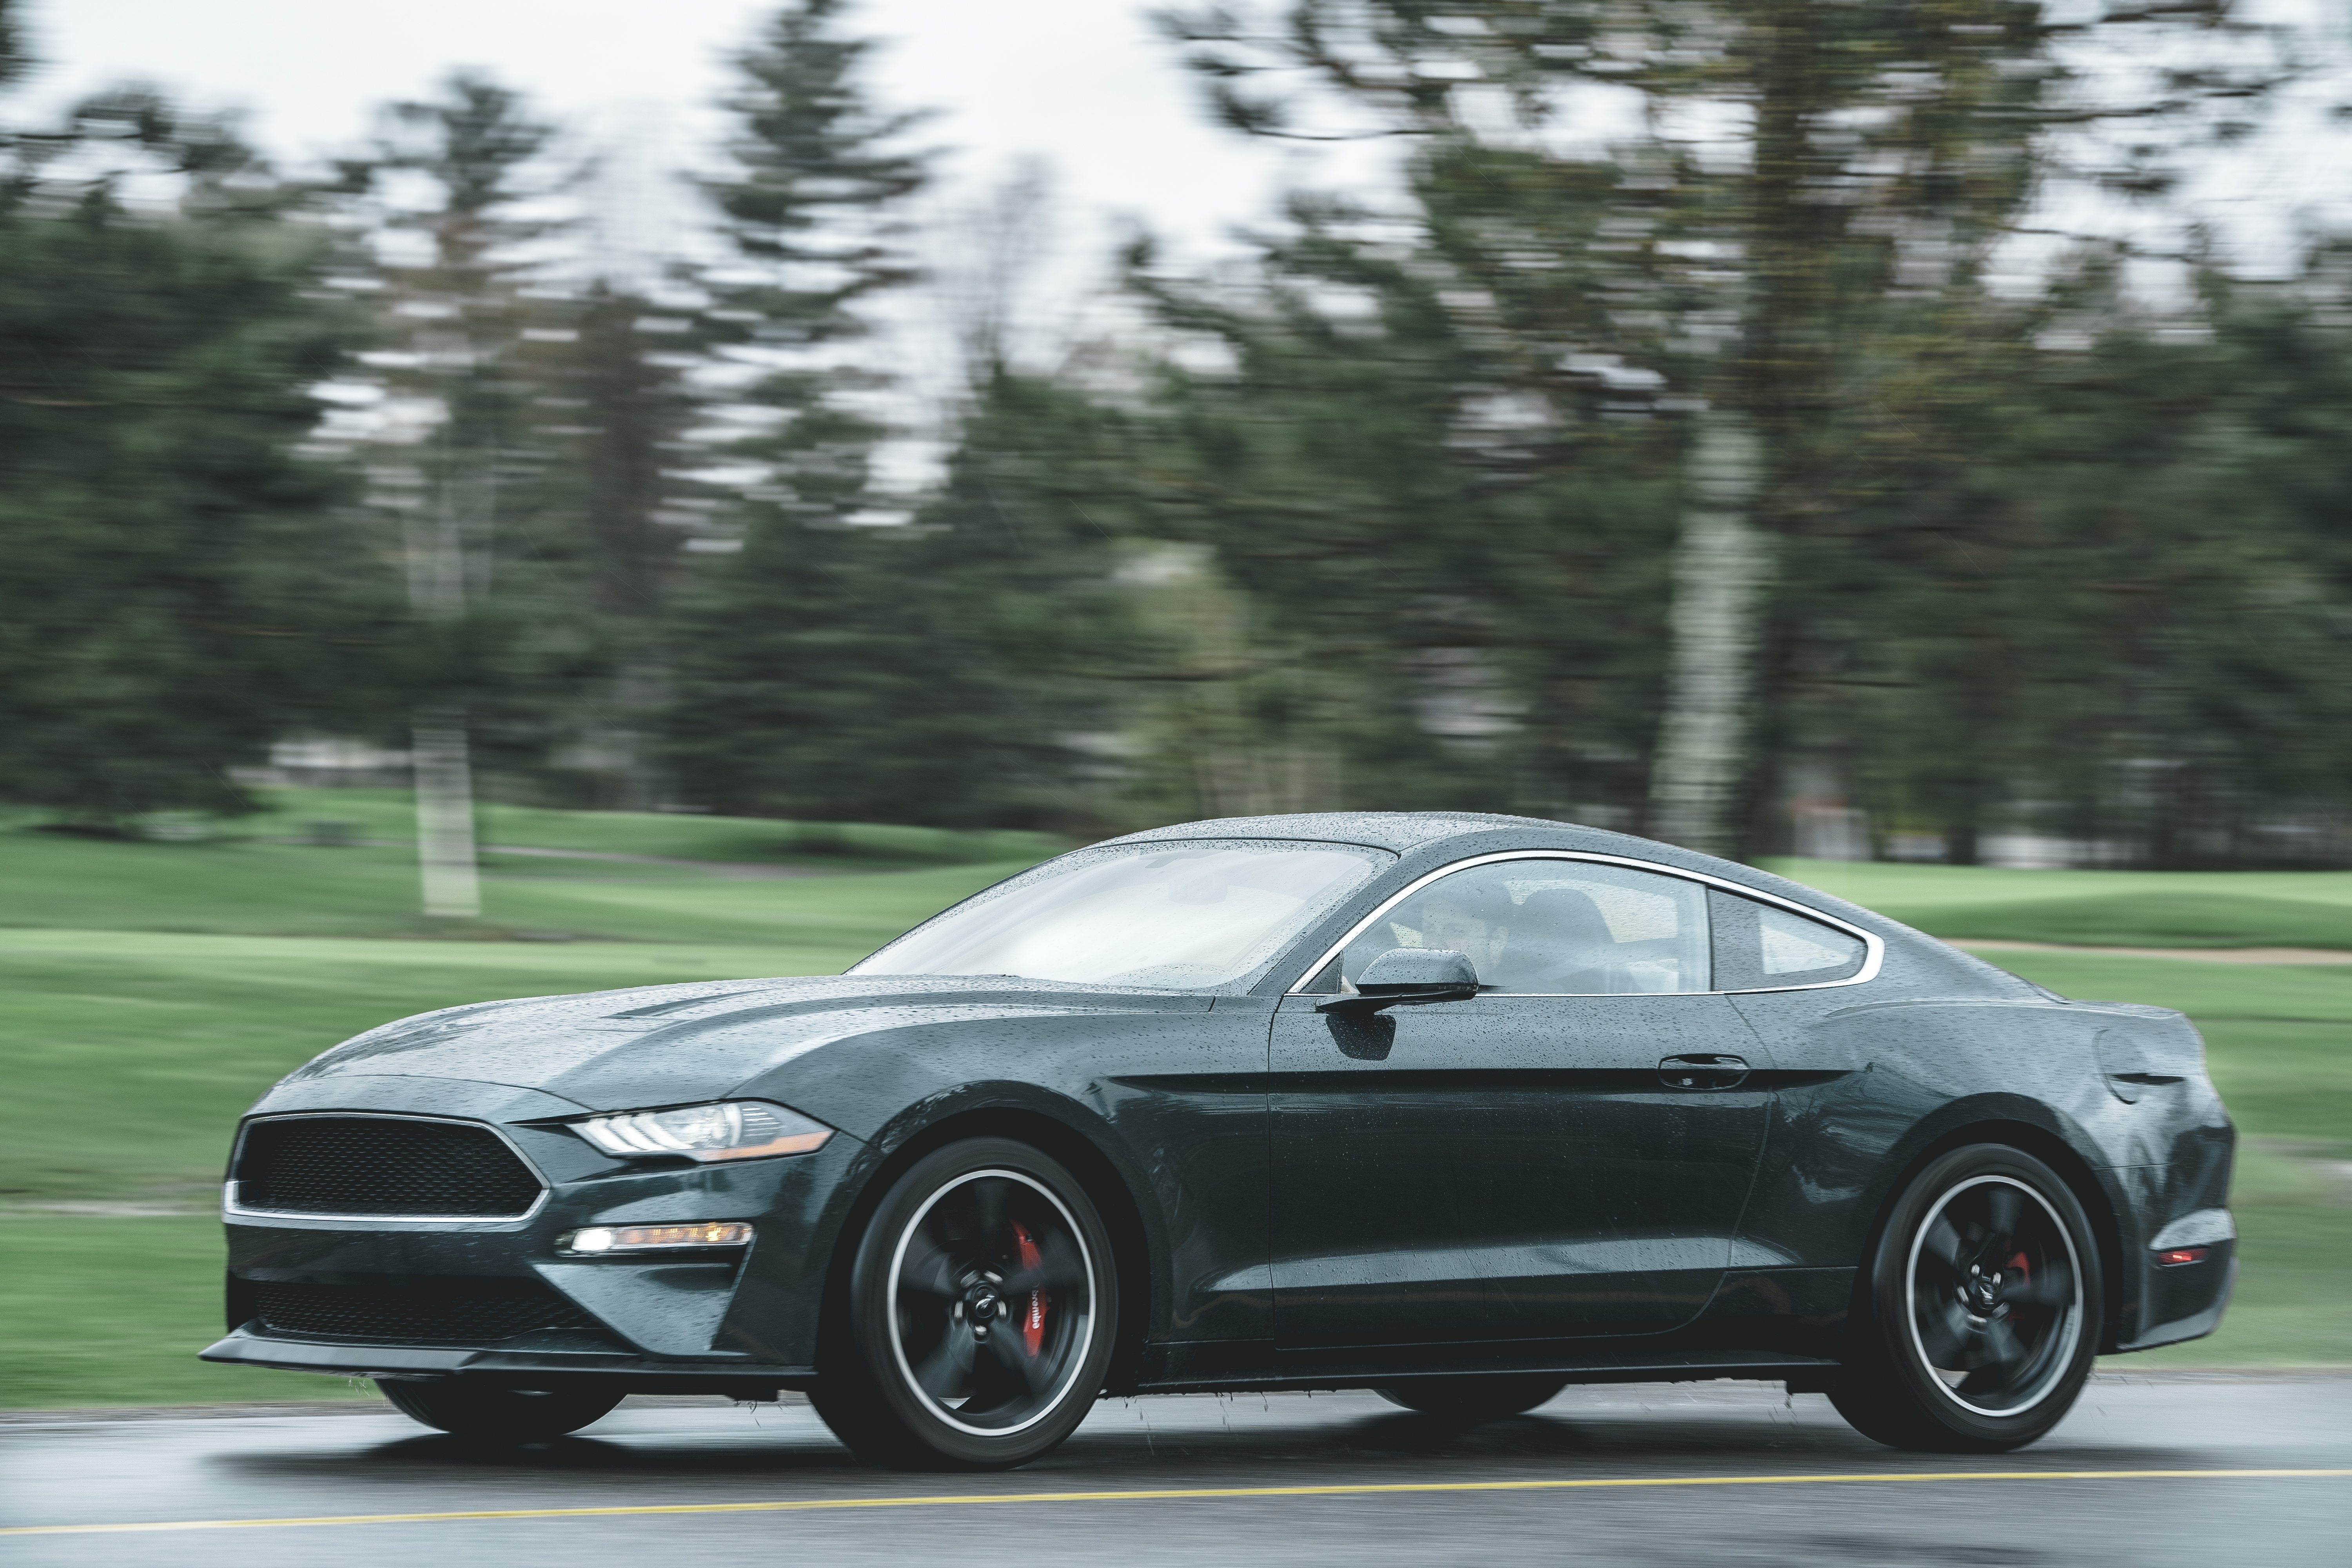 2019 Ford Mustang Sports Car The Bullitt Is Back >> 2019 Ford Mustang Bullitt Is Far More Than An Aesthetics Package